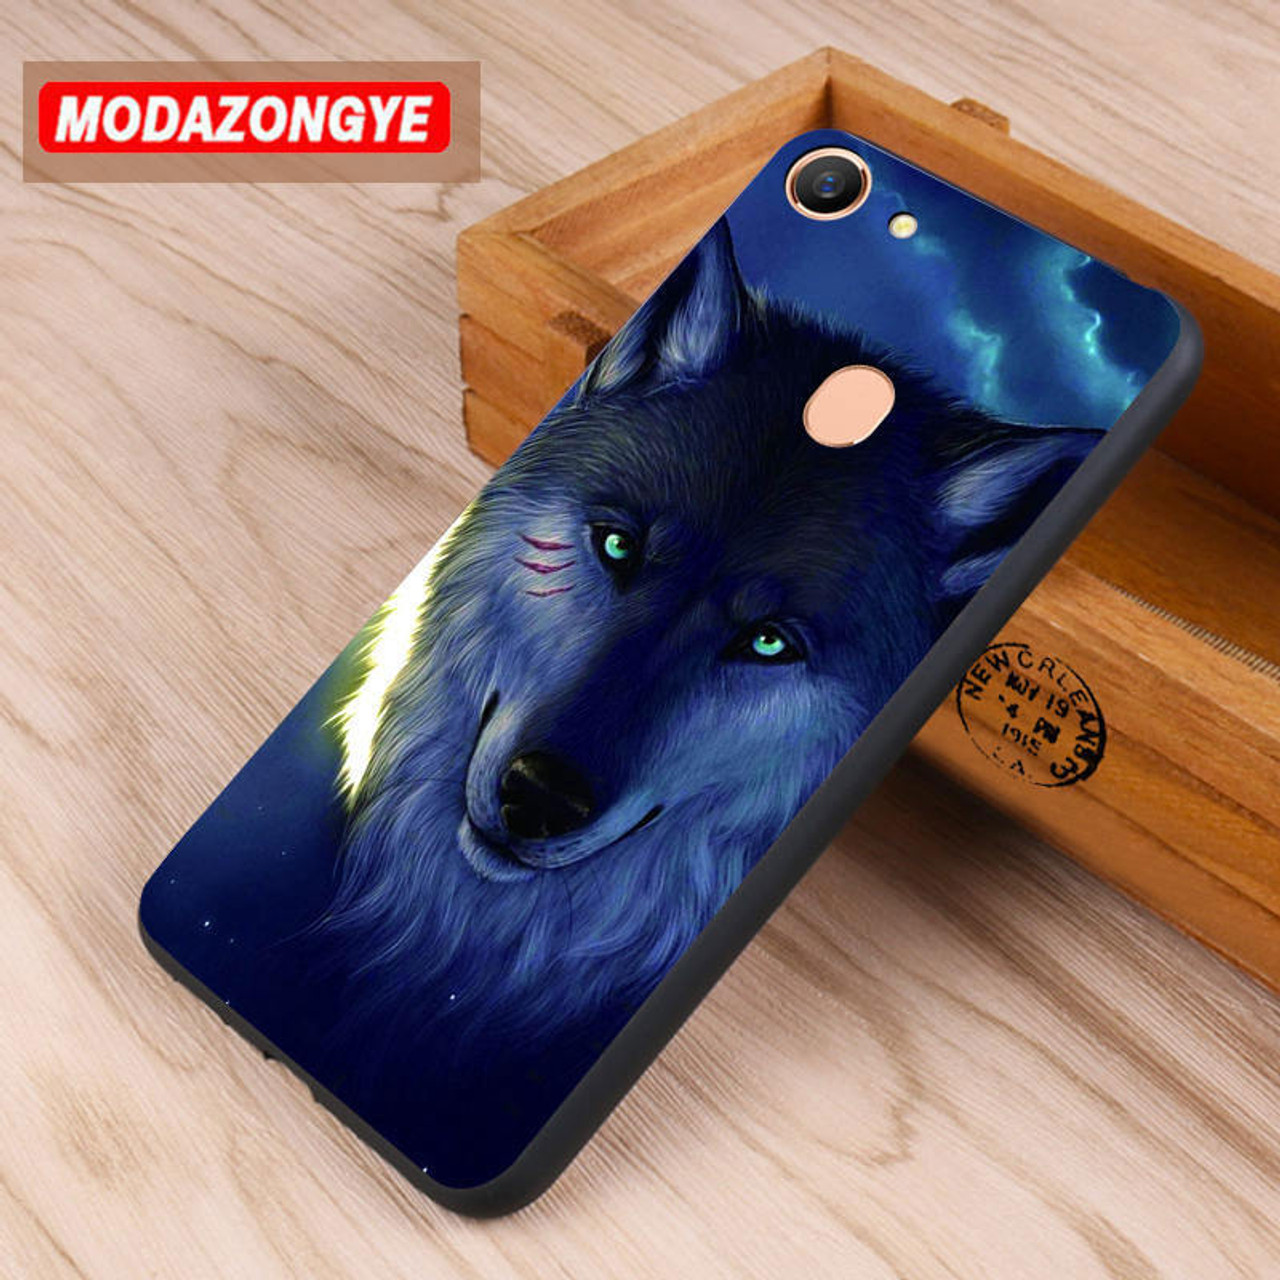 72552b3b84a7f1 ... For OPPO F5 Case OPPO F5 Cover 6.0 inch Cartoon Soft Tpu Back Cover  Phone Case ...